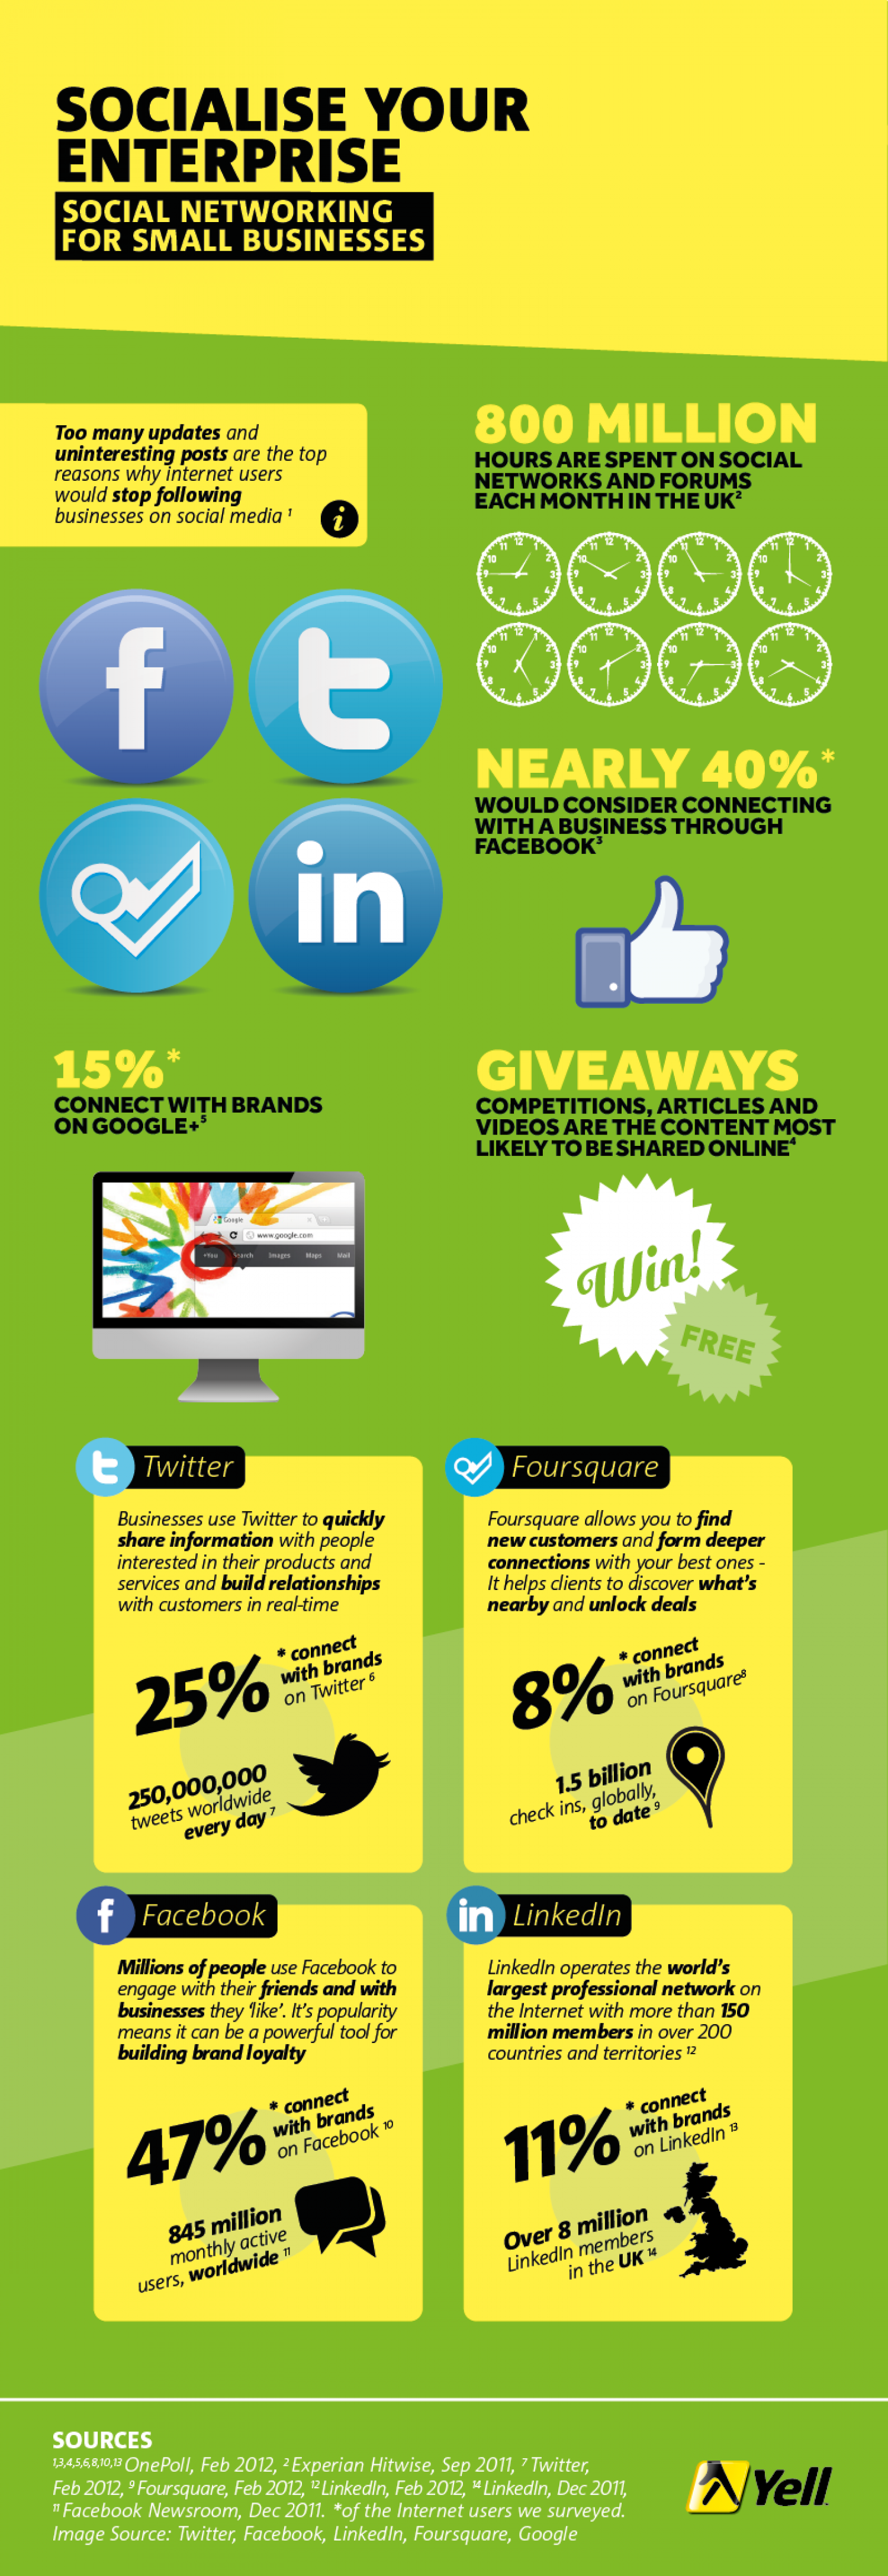 Socialise Your Enterprise Infographic